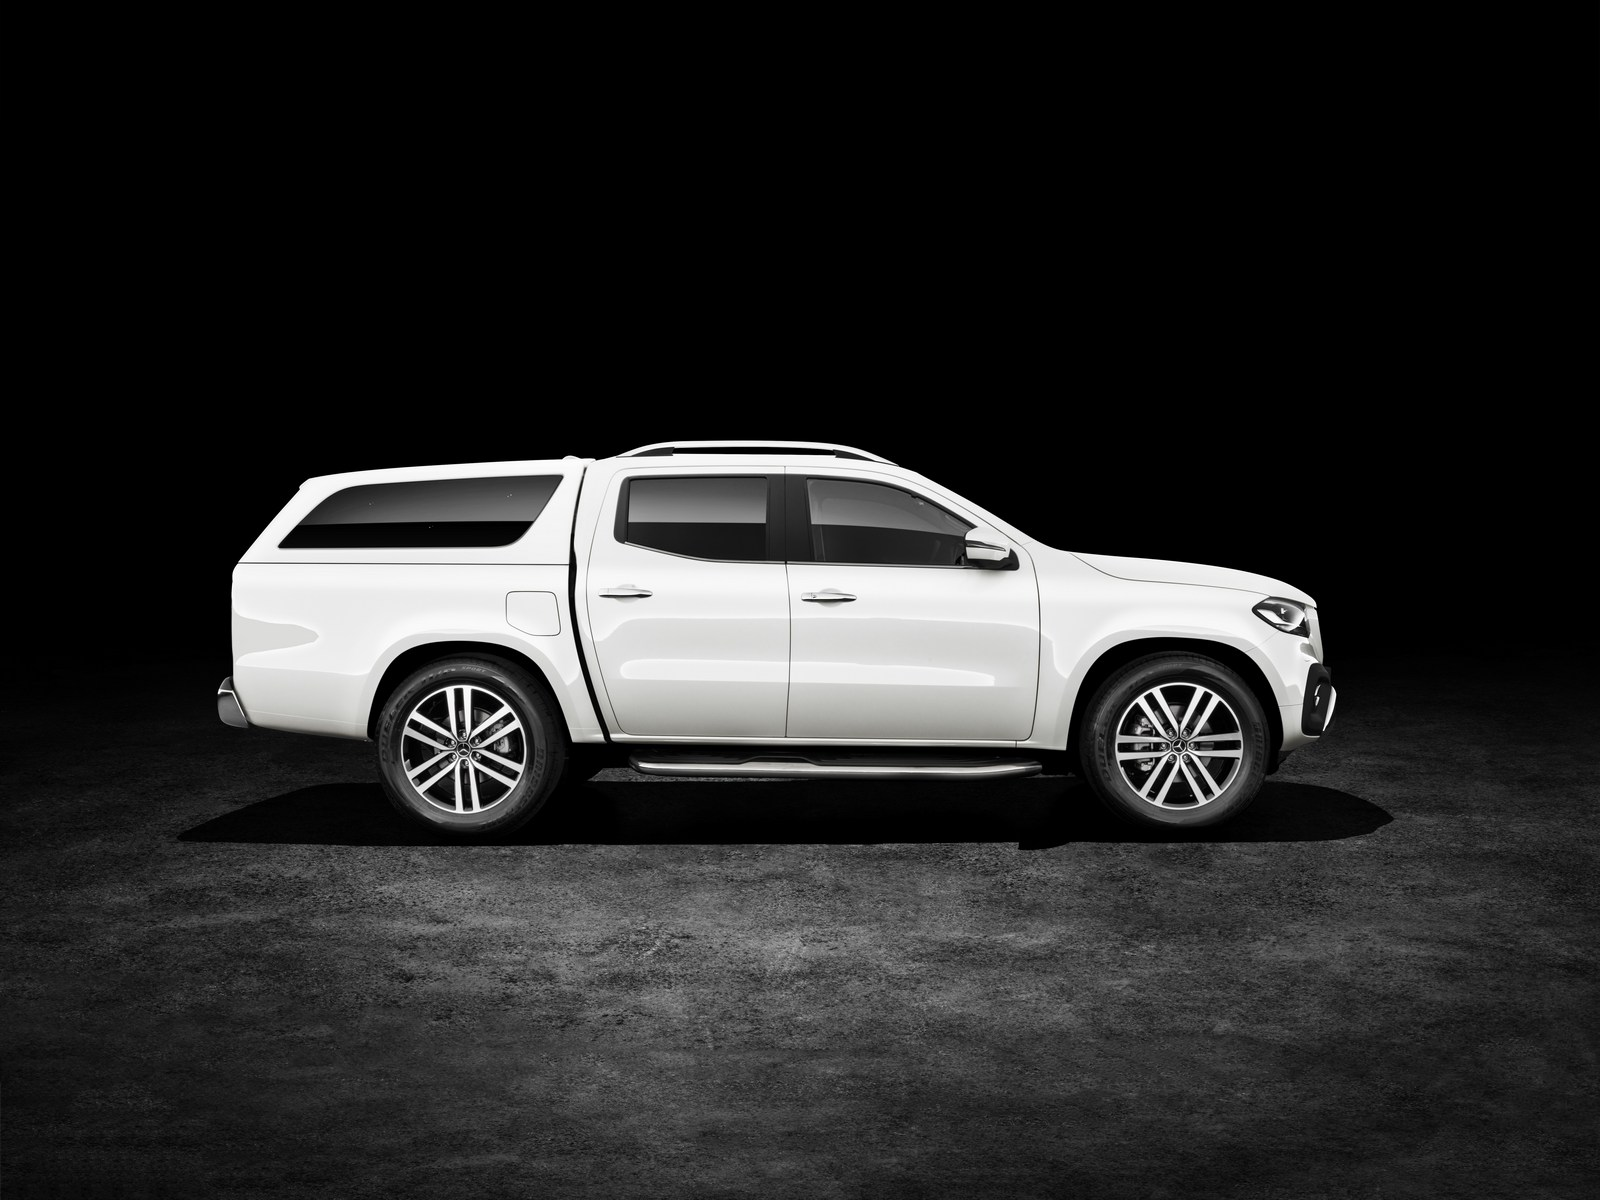 Mercedes-Benz X-Klasse – Exterieur, Beringweiß metallic, Ausstattungslinie POWER, Hardtop und Side Bar (Mercedes-Benz Zubehör)   Mercedes-Benz X-Class – Exterior, bering white metallic, design and equipment line POWER, canopy and side bar (Mercedes-Benz accessories)